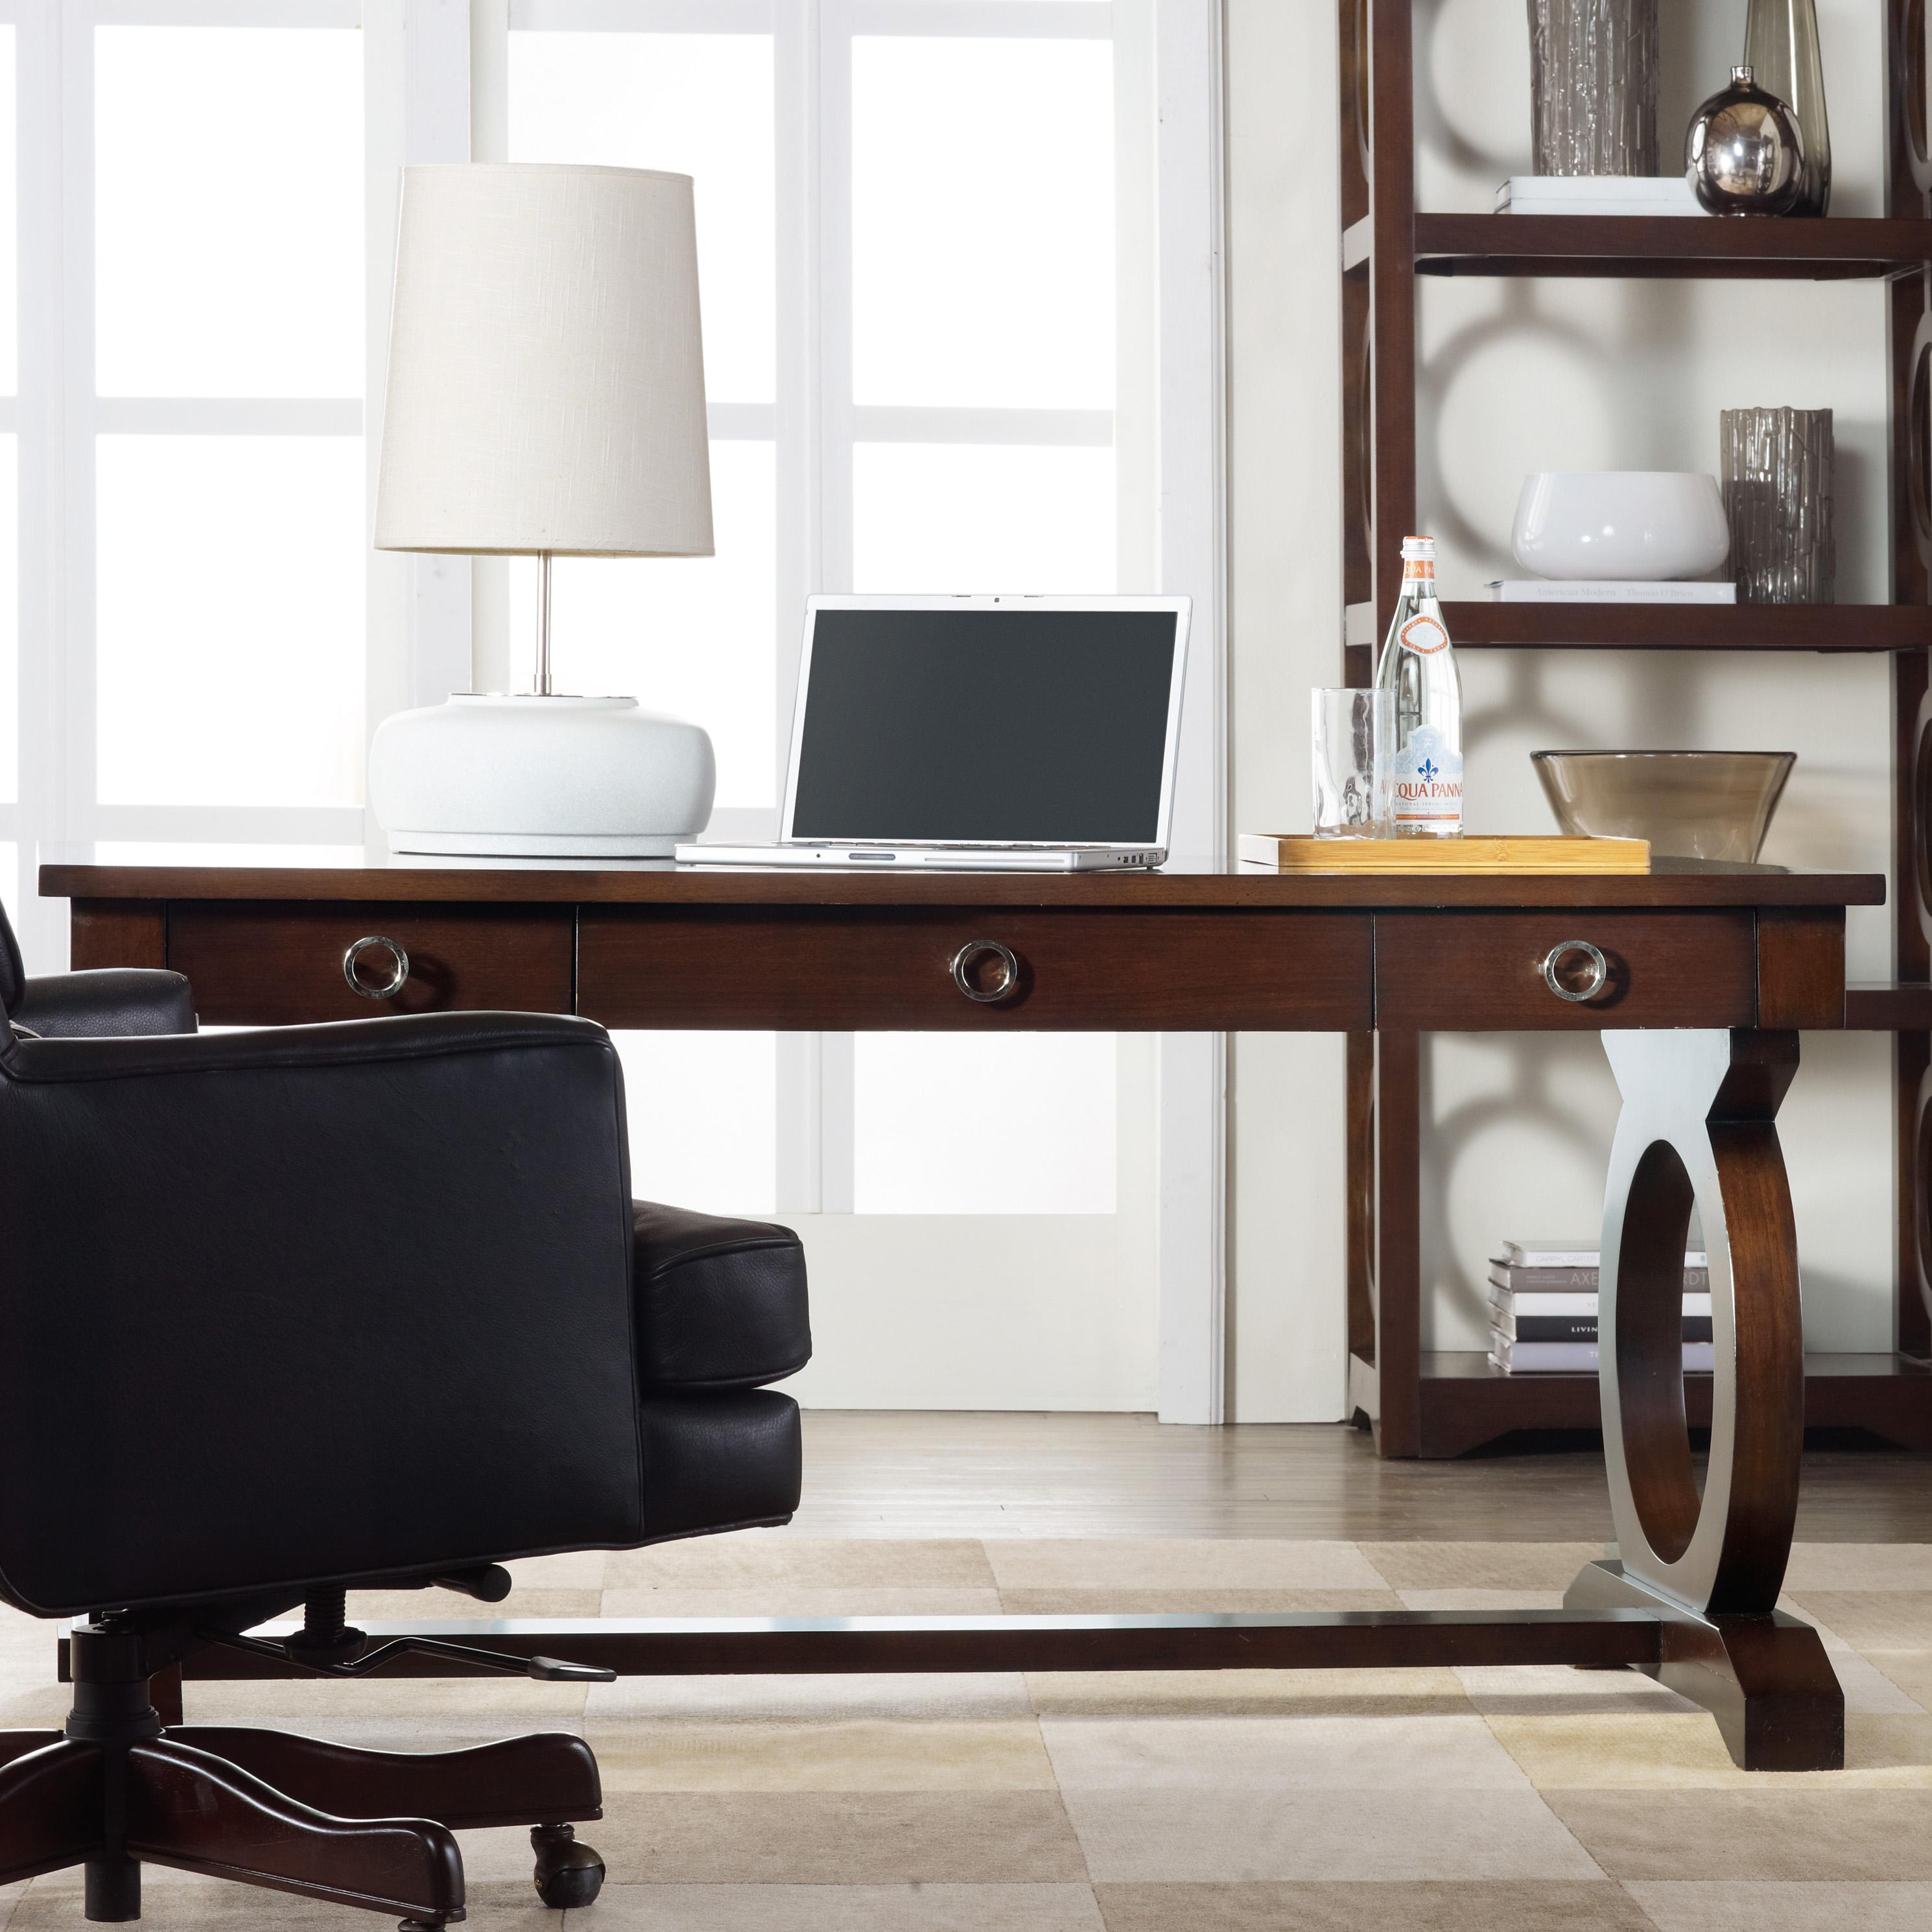 Contemporary writing desk with drop front keyboard drawer and open circle fretwork